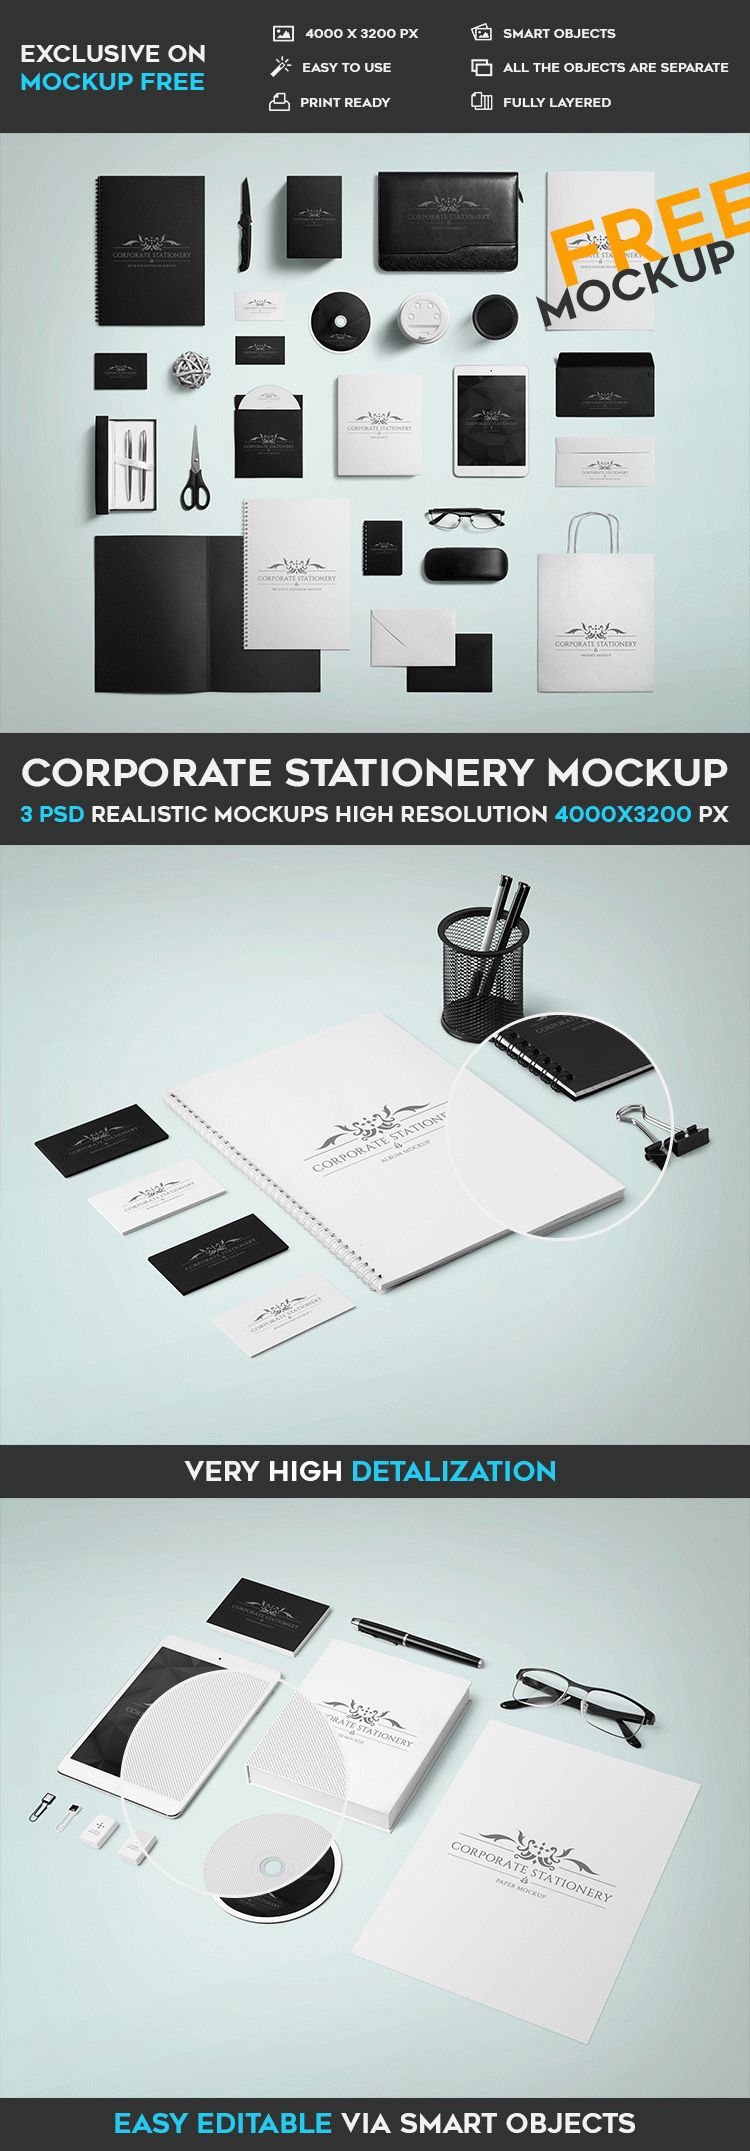 bigpreview_corporate-stationery